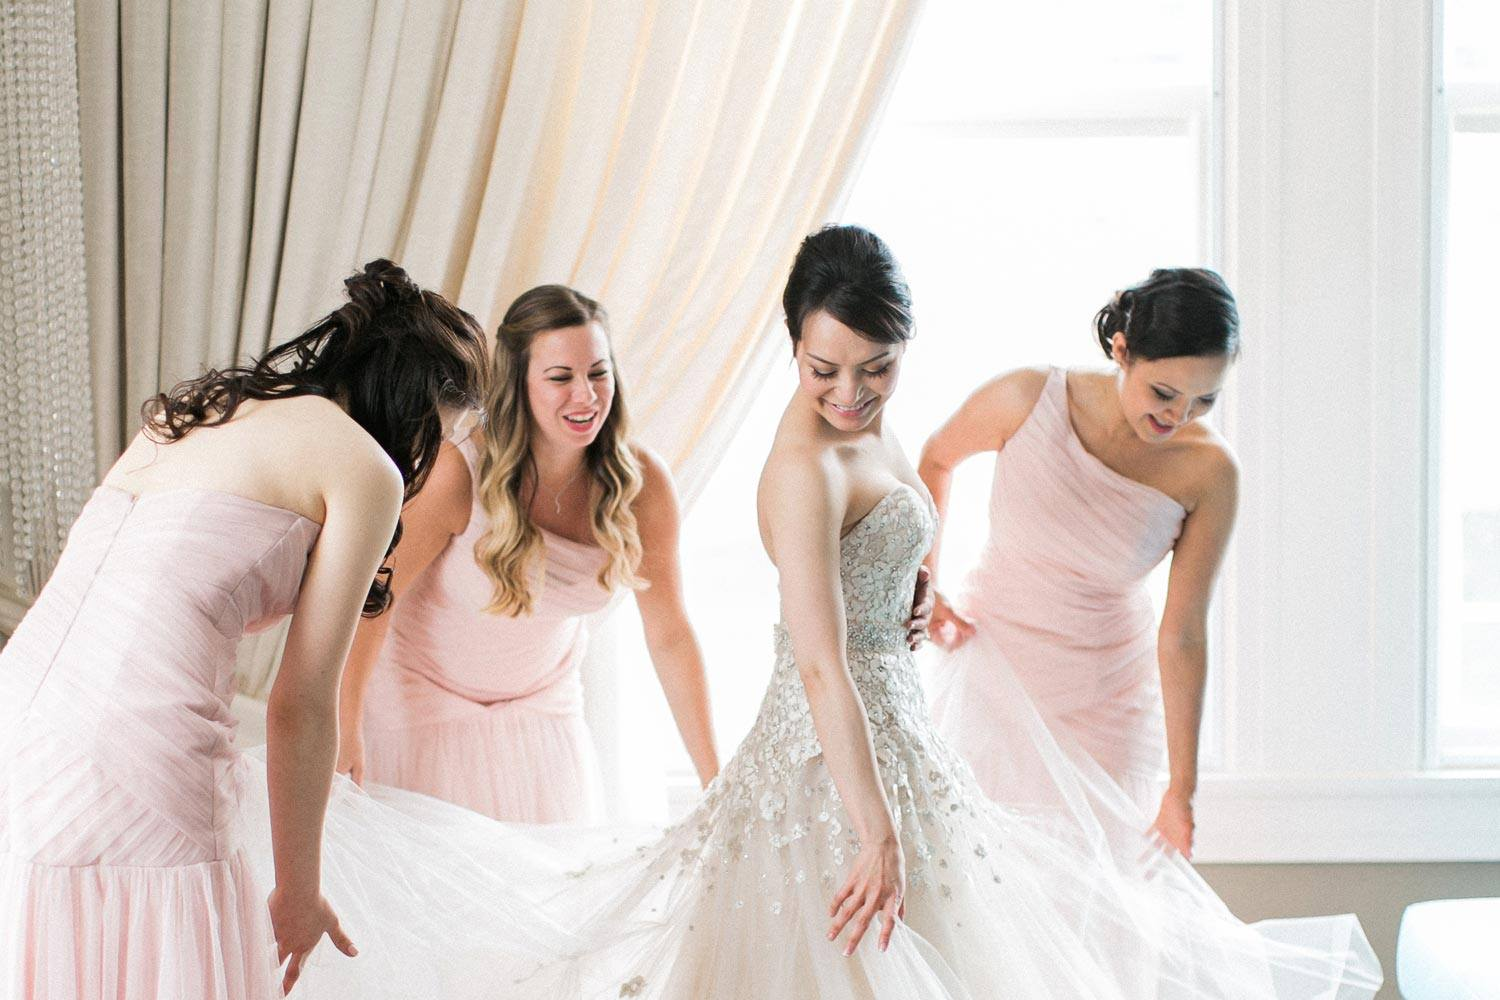 bridal party getting wedding ready